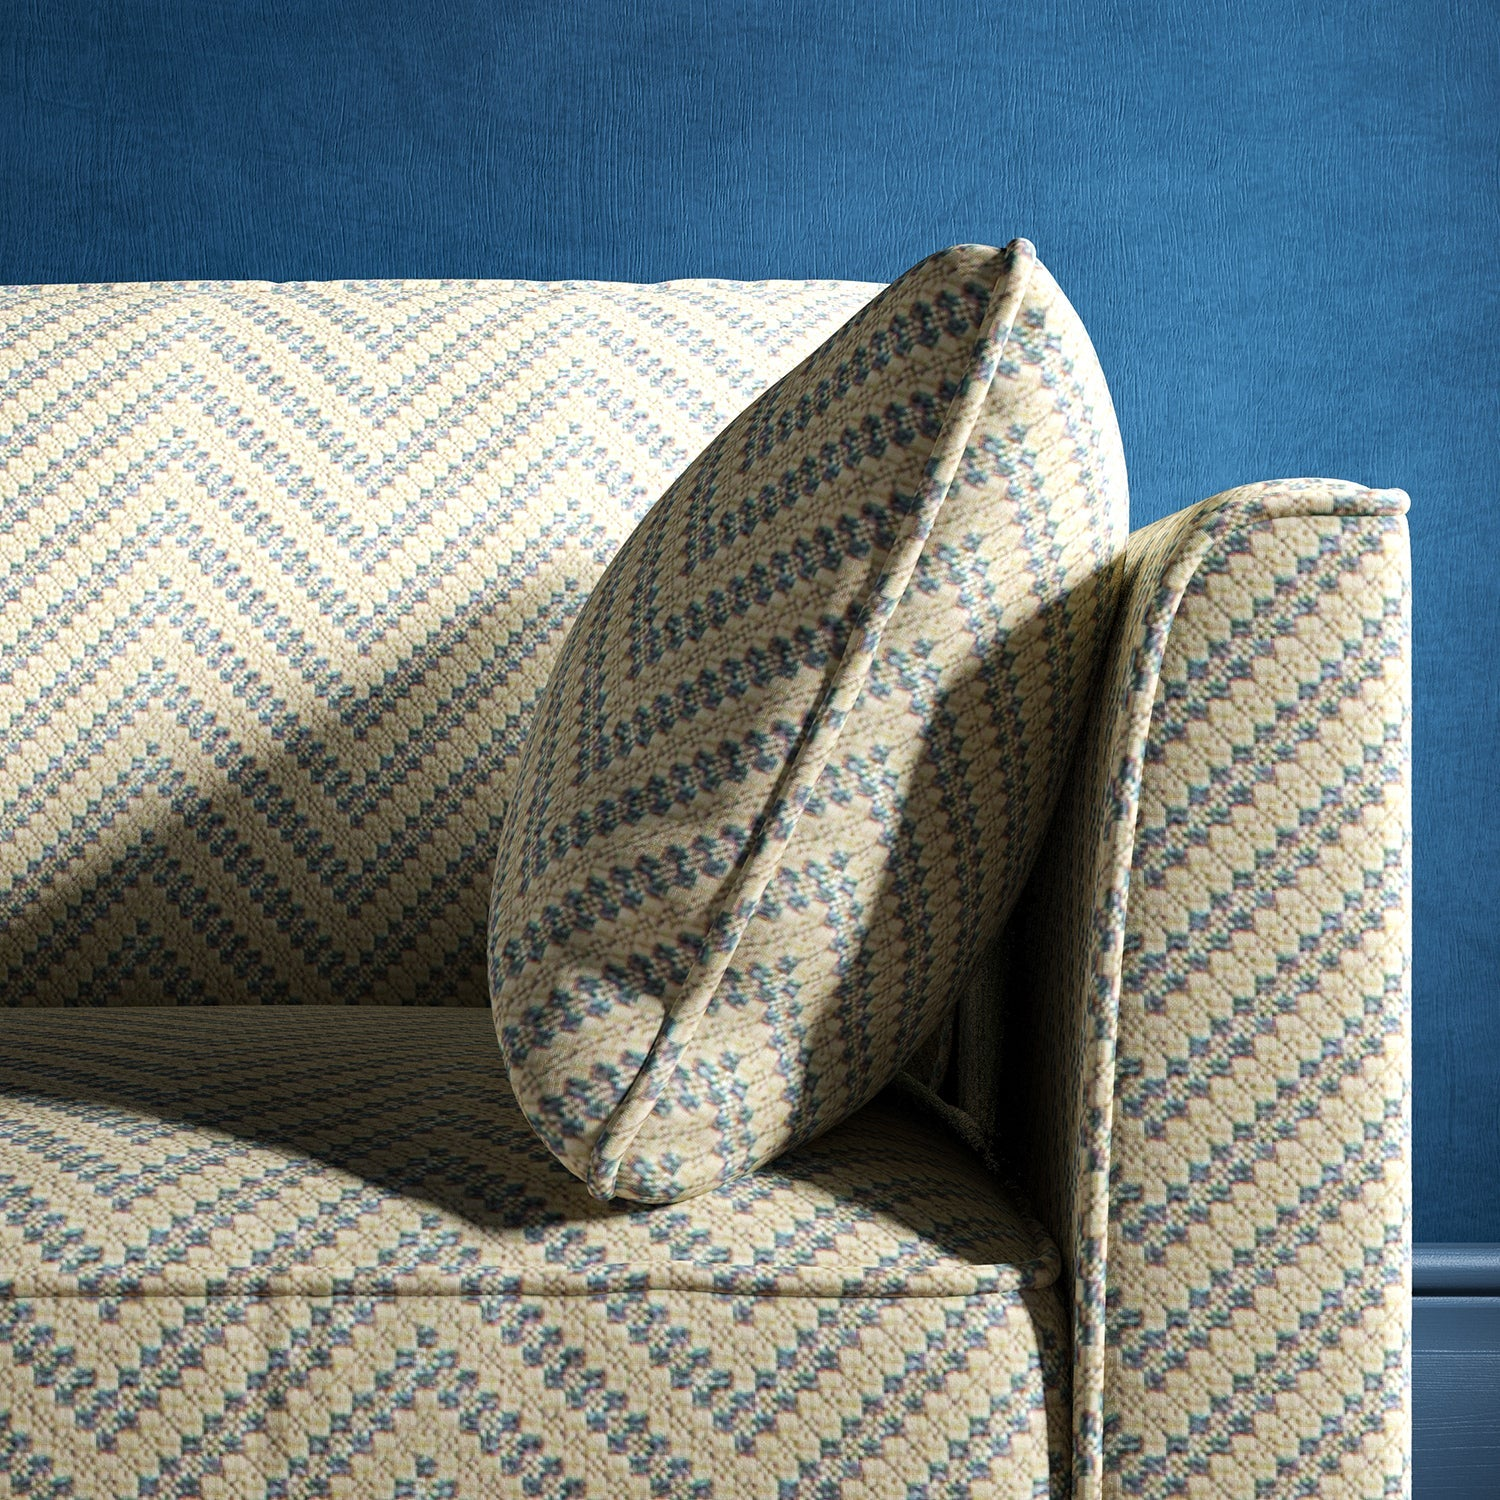 Sofa upholstered in a light blue and neutral herringbone upholstery fabric